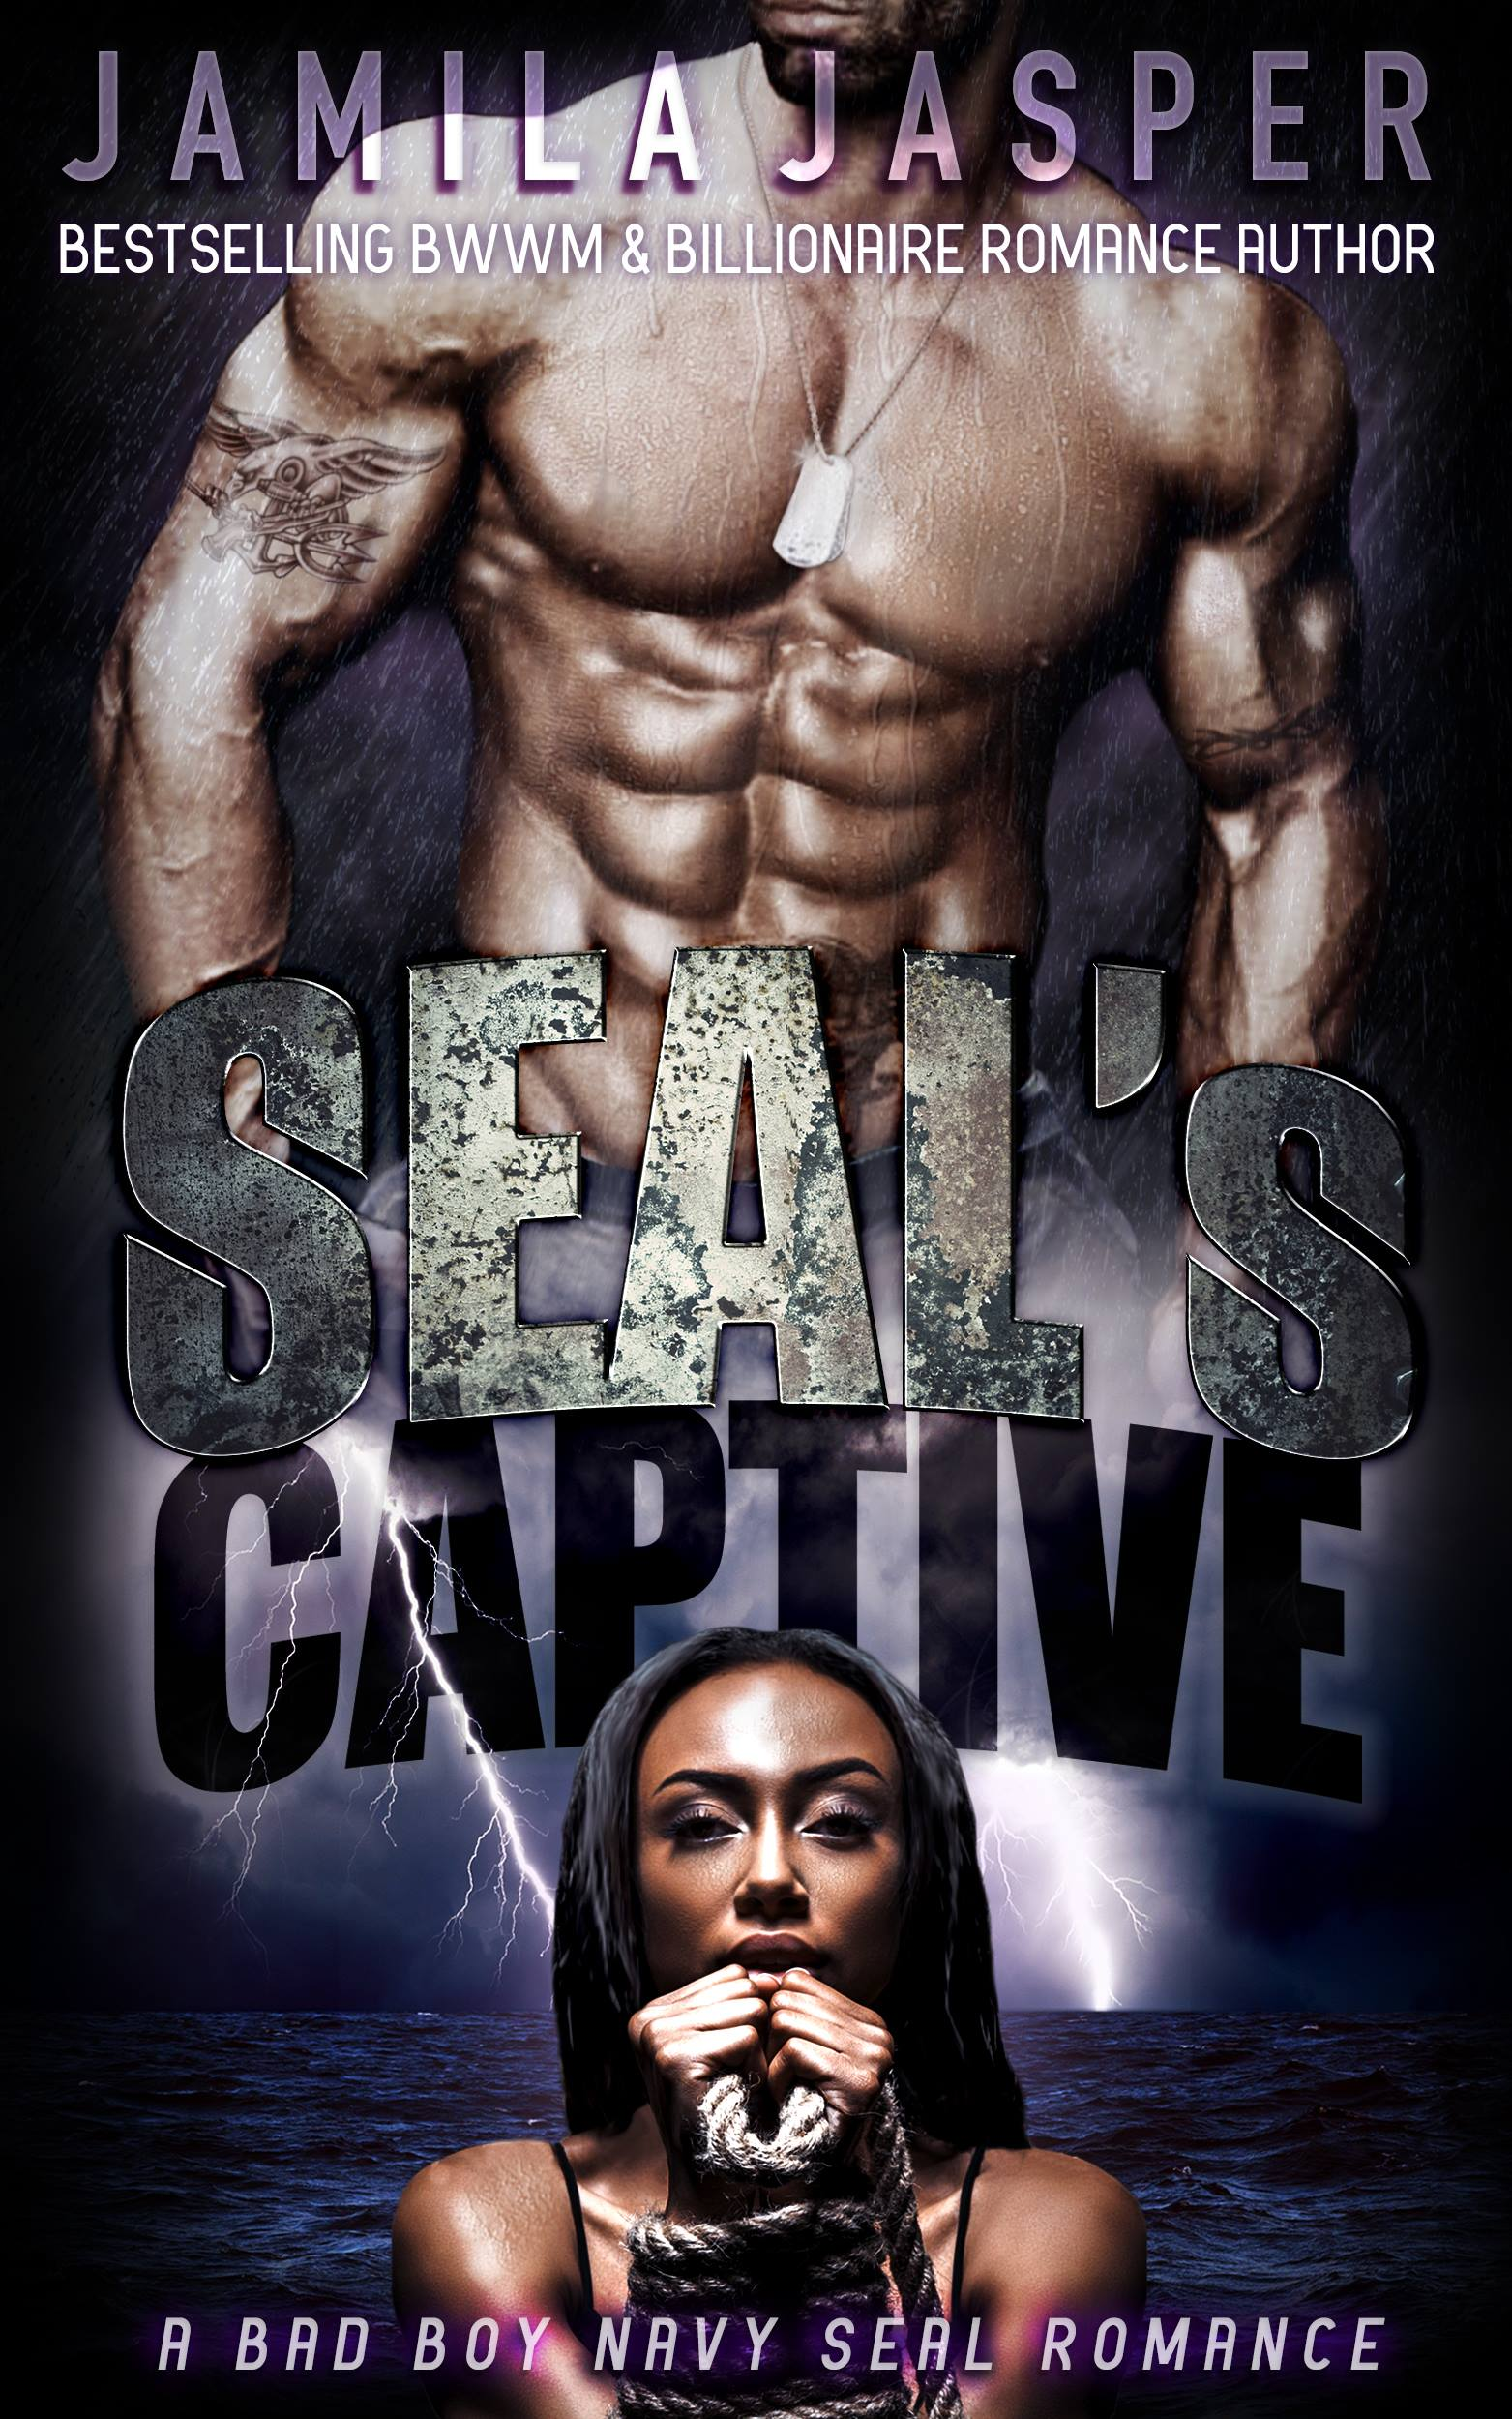 seals captive dark romance books bwwm bad boy military romance us navy seal romance novel